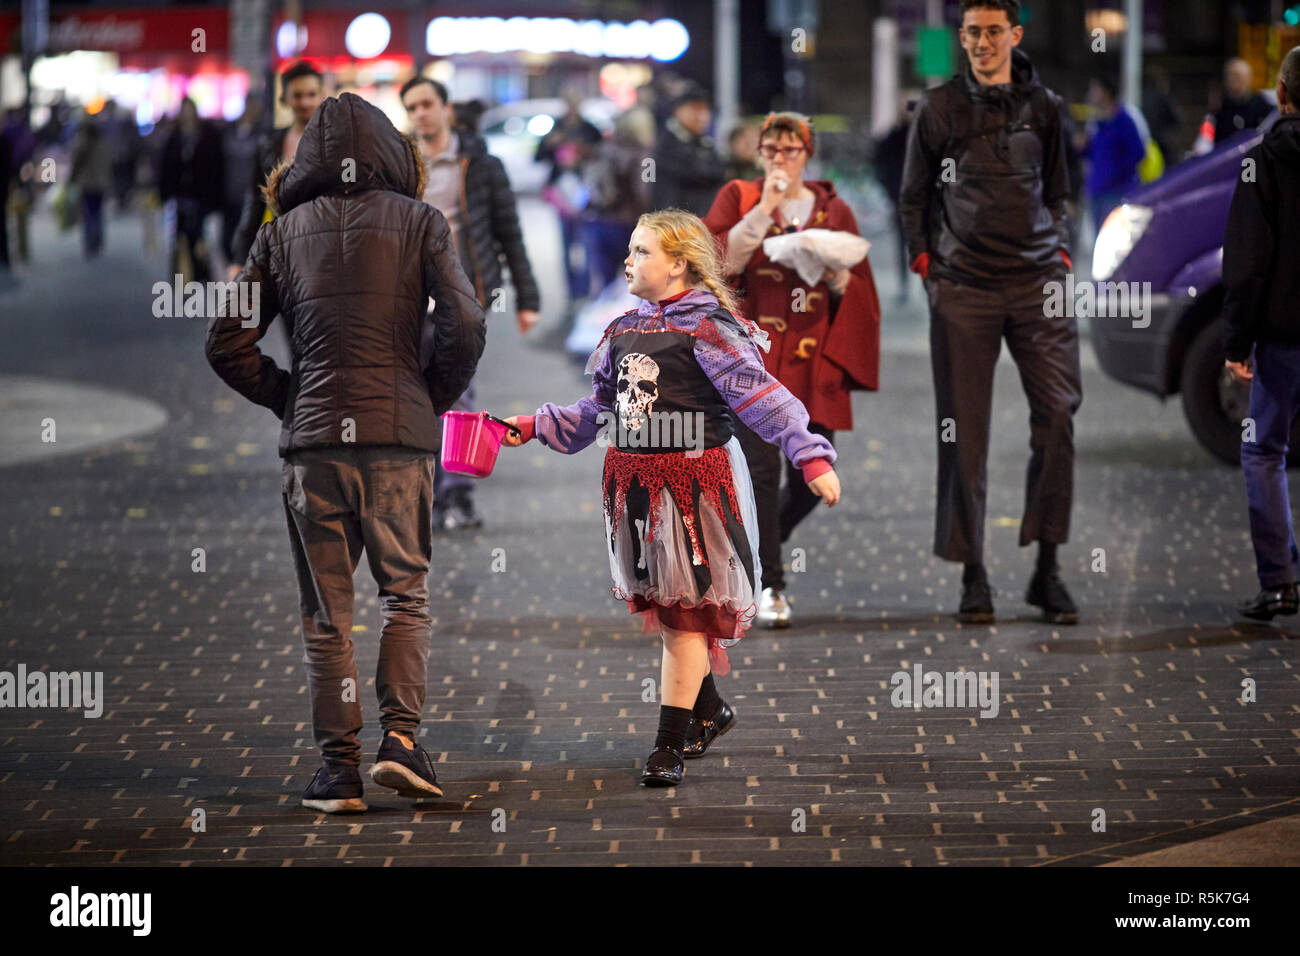 Liverpool city centre irish traveler children begging for money dressed as Halloween costumes - Stock Image